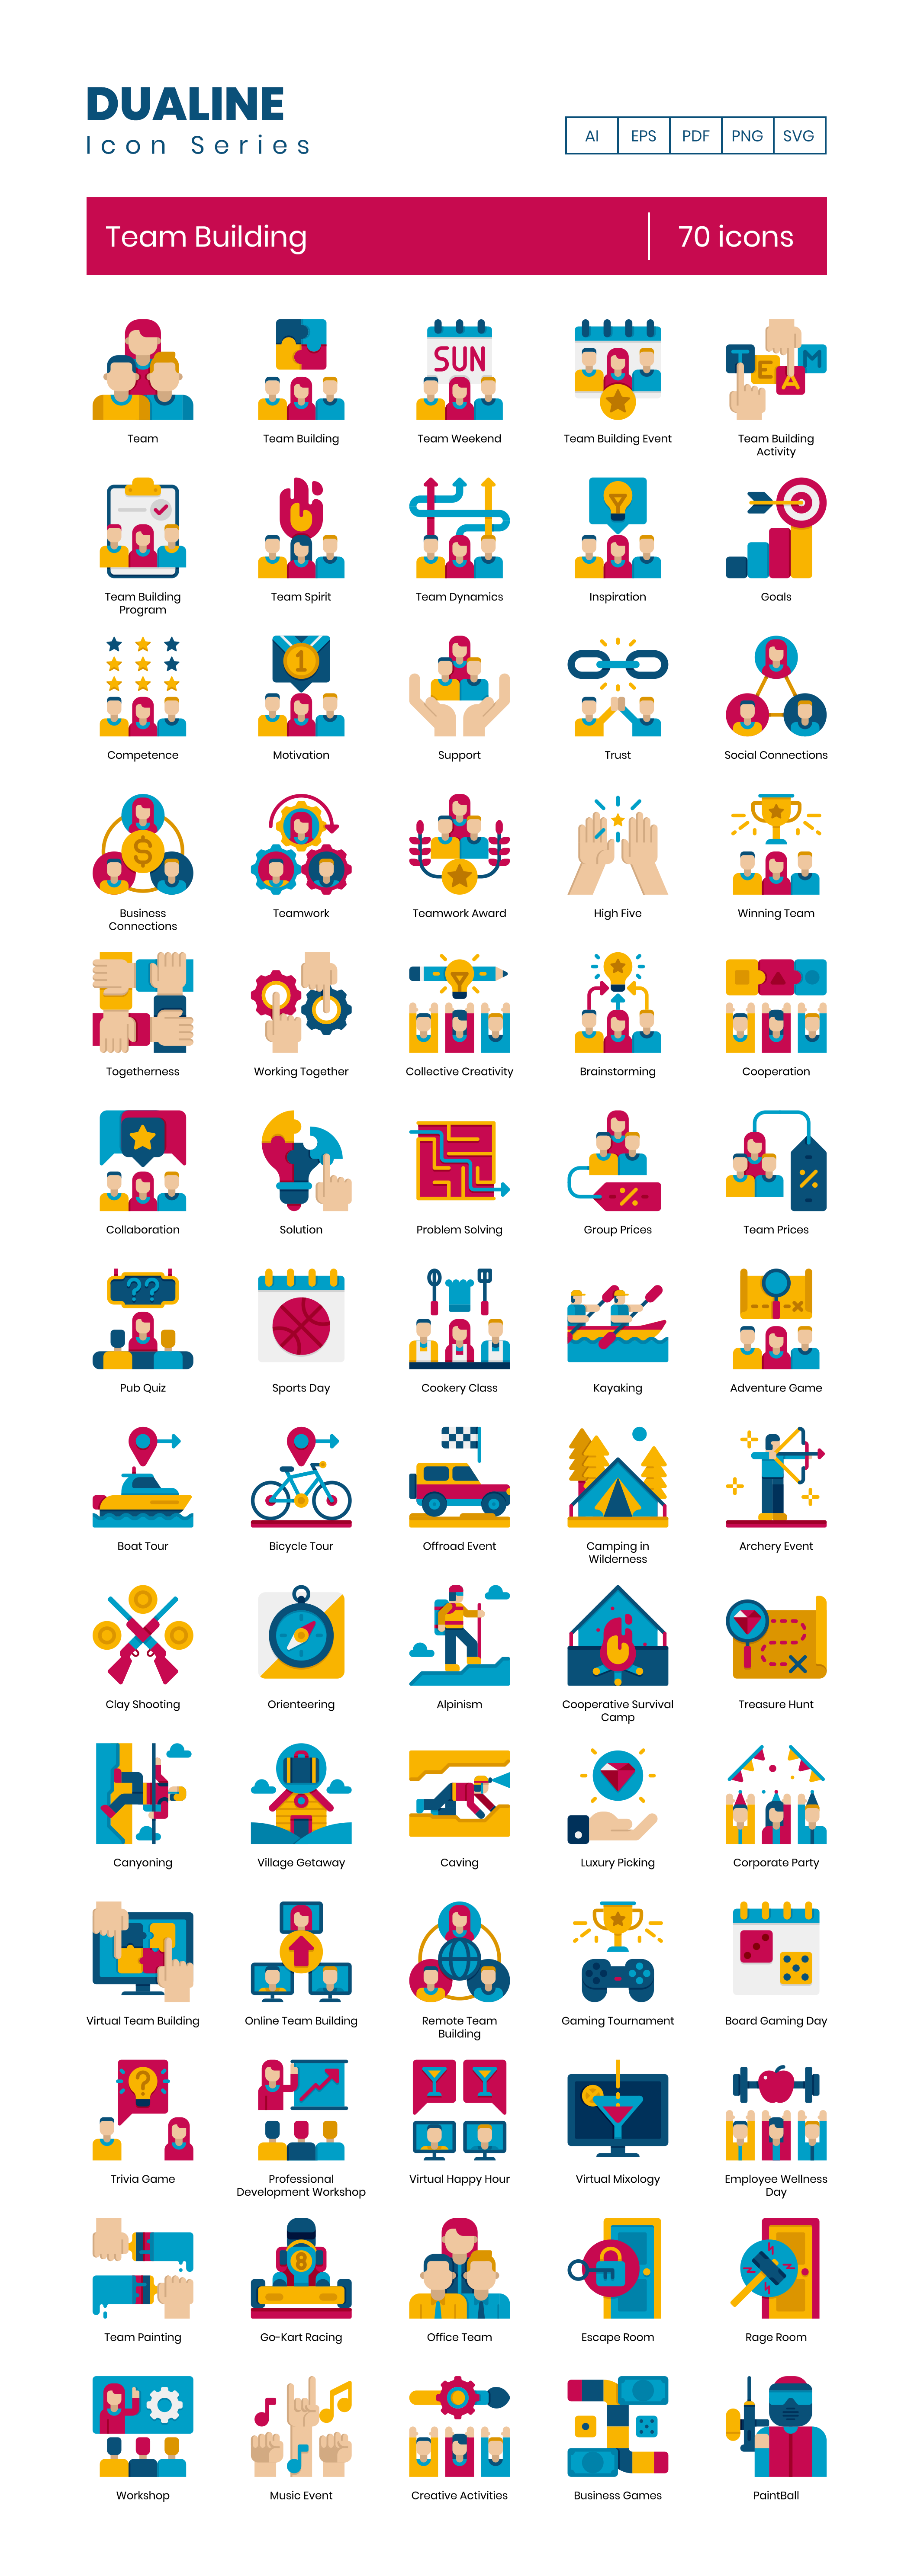 Team Building Vector Icons Preview Image